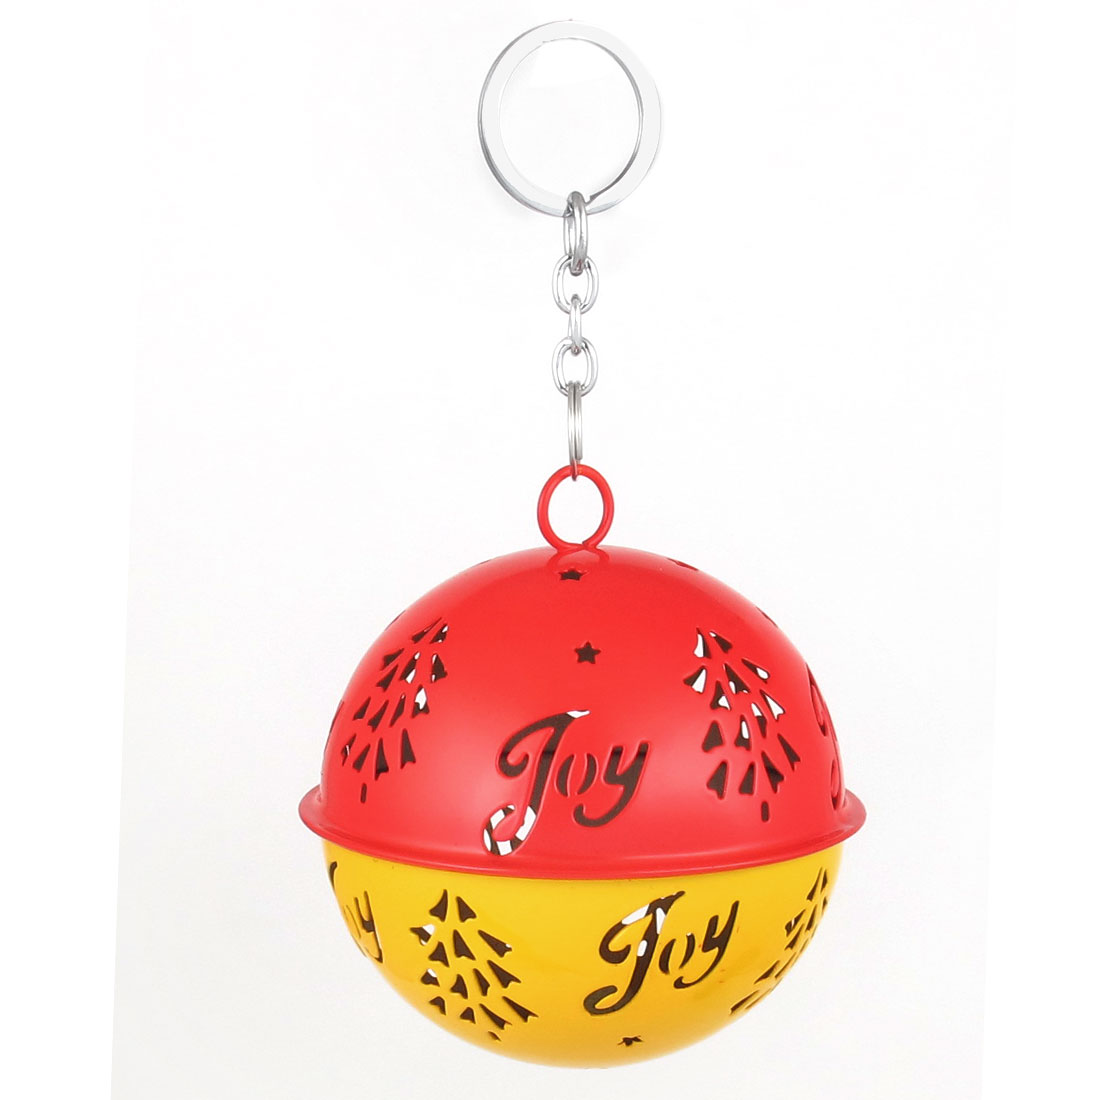 85mm Diameter Yellow Red Metal Christmas Tree Detail Ball Shape Keychain Hollow Out Design Jingle Ring Bell Ornament for Celebration Party Case